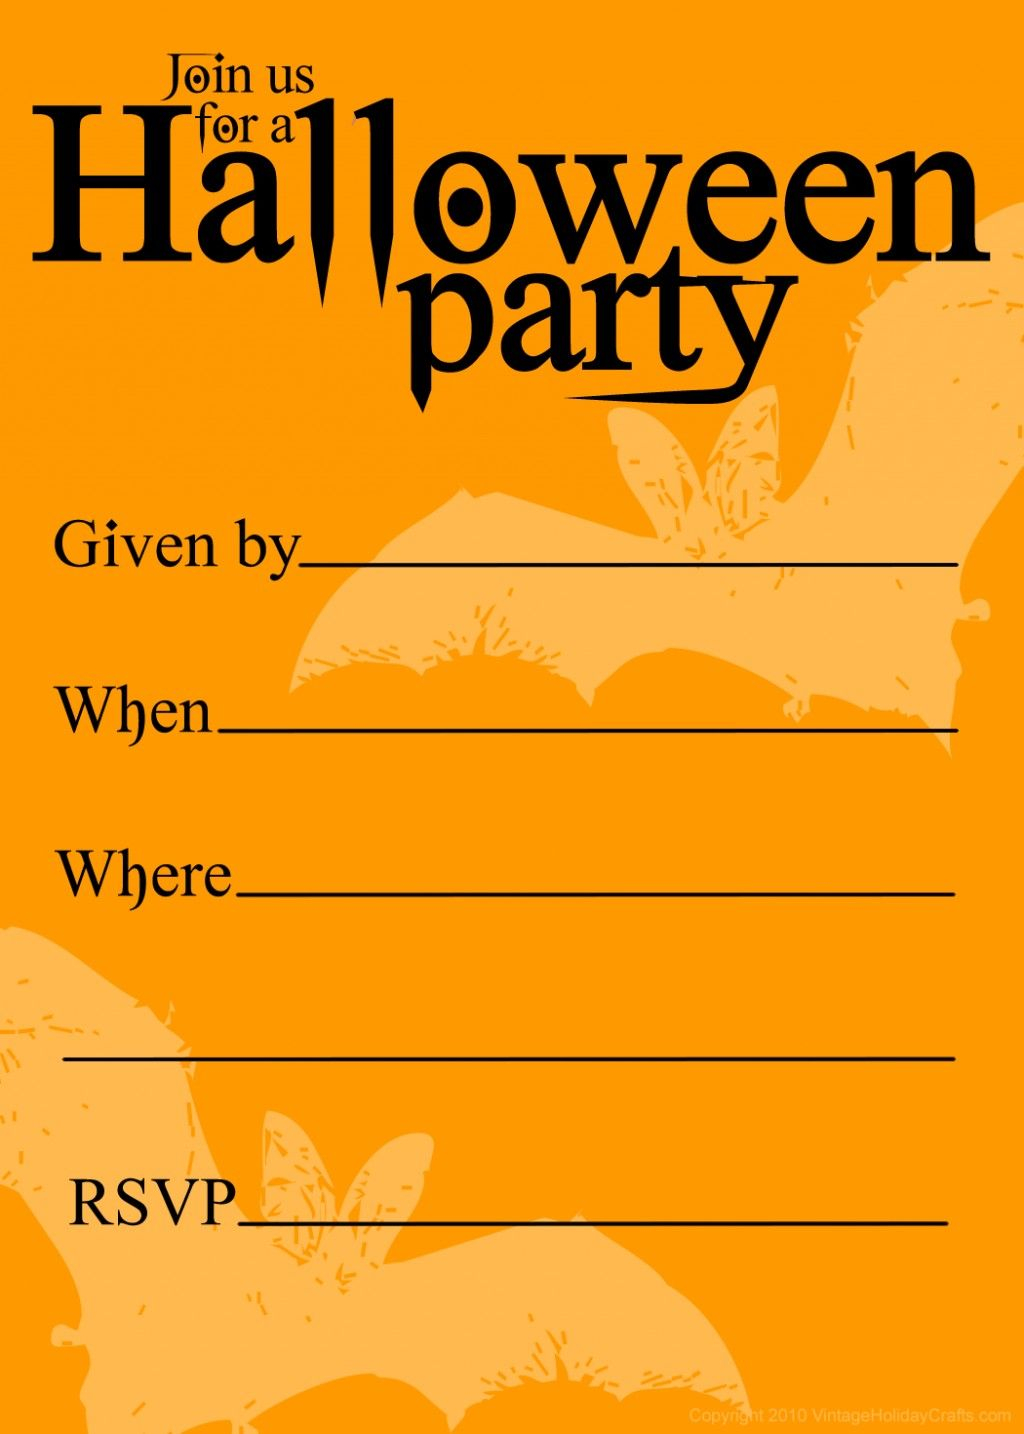 Free Printable Halloween Birthday Invitations Templates Halloween intended for sizing 1024 X 1434